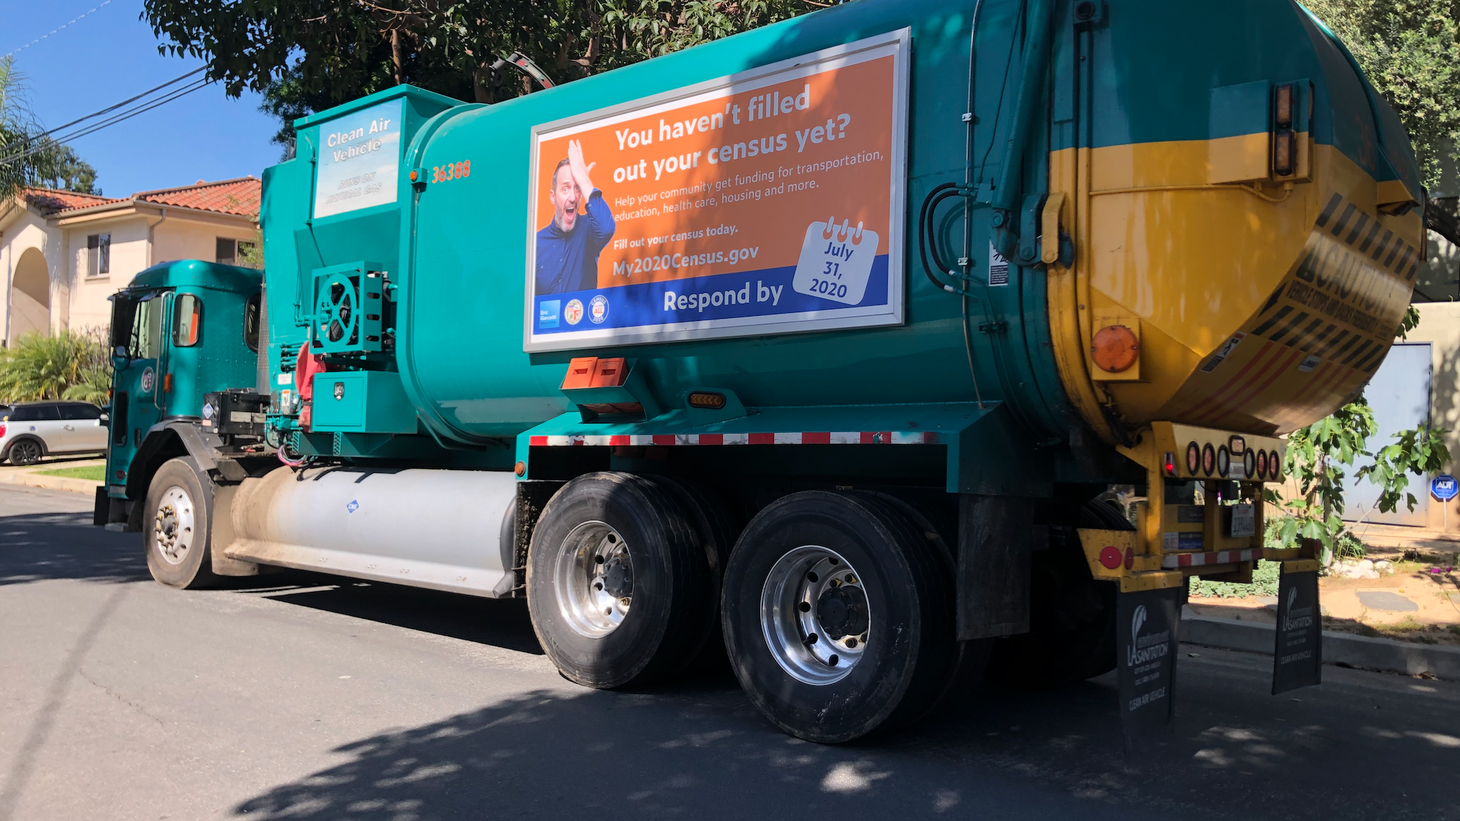 As people stay home during the pandemic, they're generating more waste. In the City of Los Angeles, garbage trucks have been authorized to pick up extra bags of trash in residential areas.